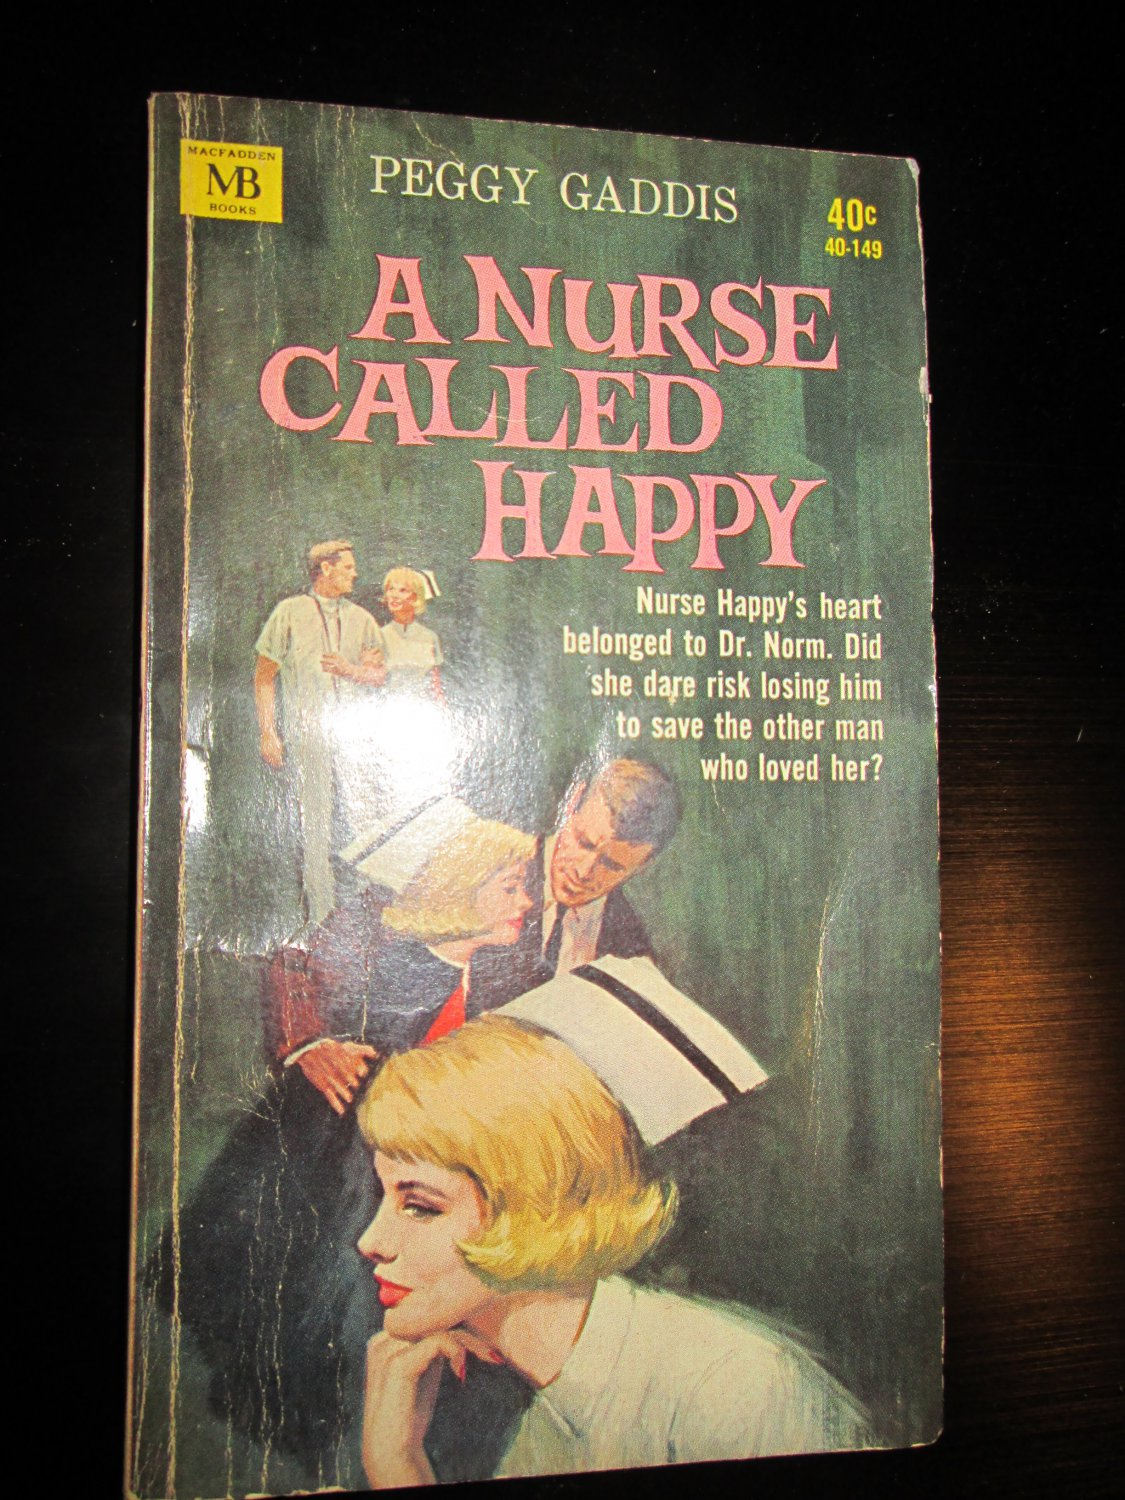 A Nurse Called Happy by Peggy Gaddis